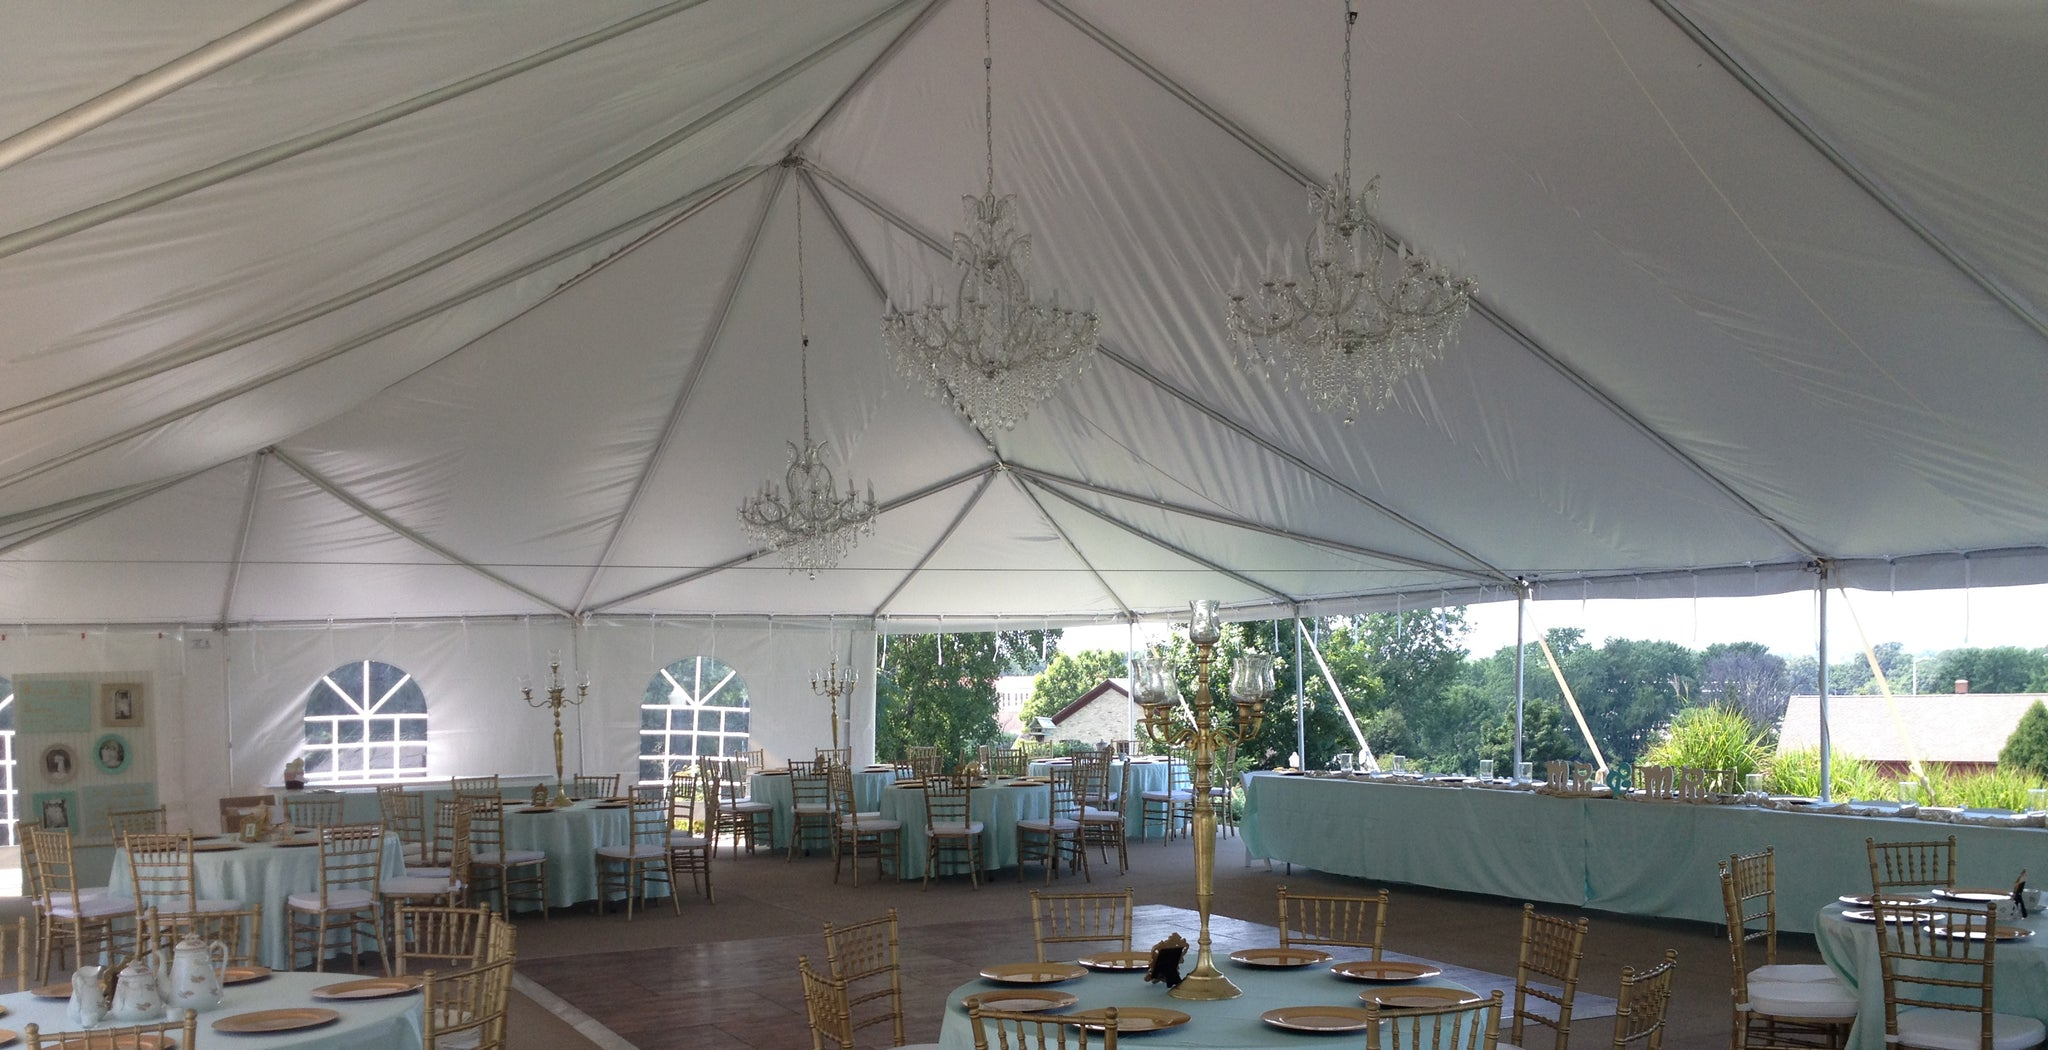 AMERICAN-MADE QUALITY AT AFFORDABLE PRICES & American Tent And Sidewall - Commercial Tents For Sale